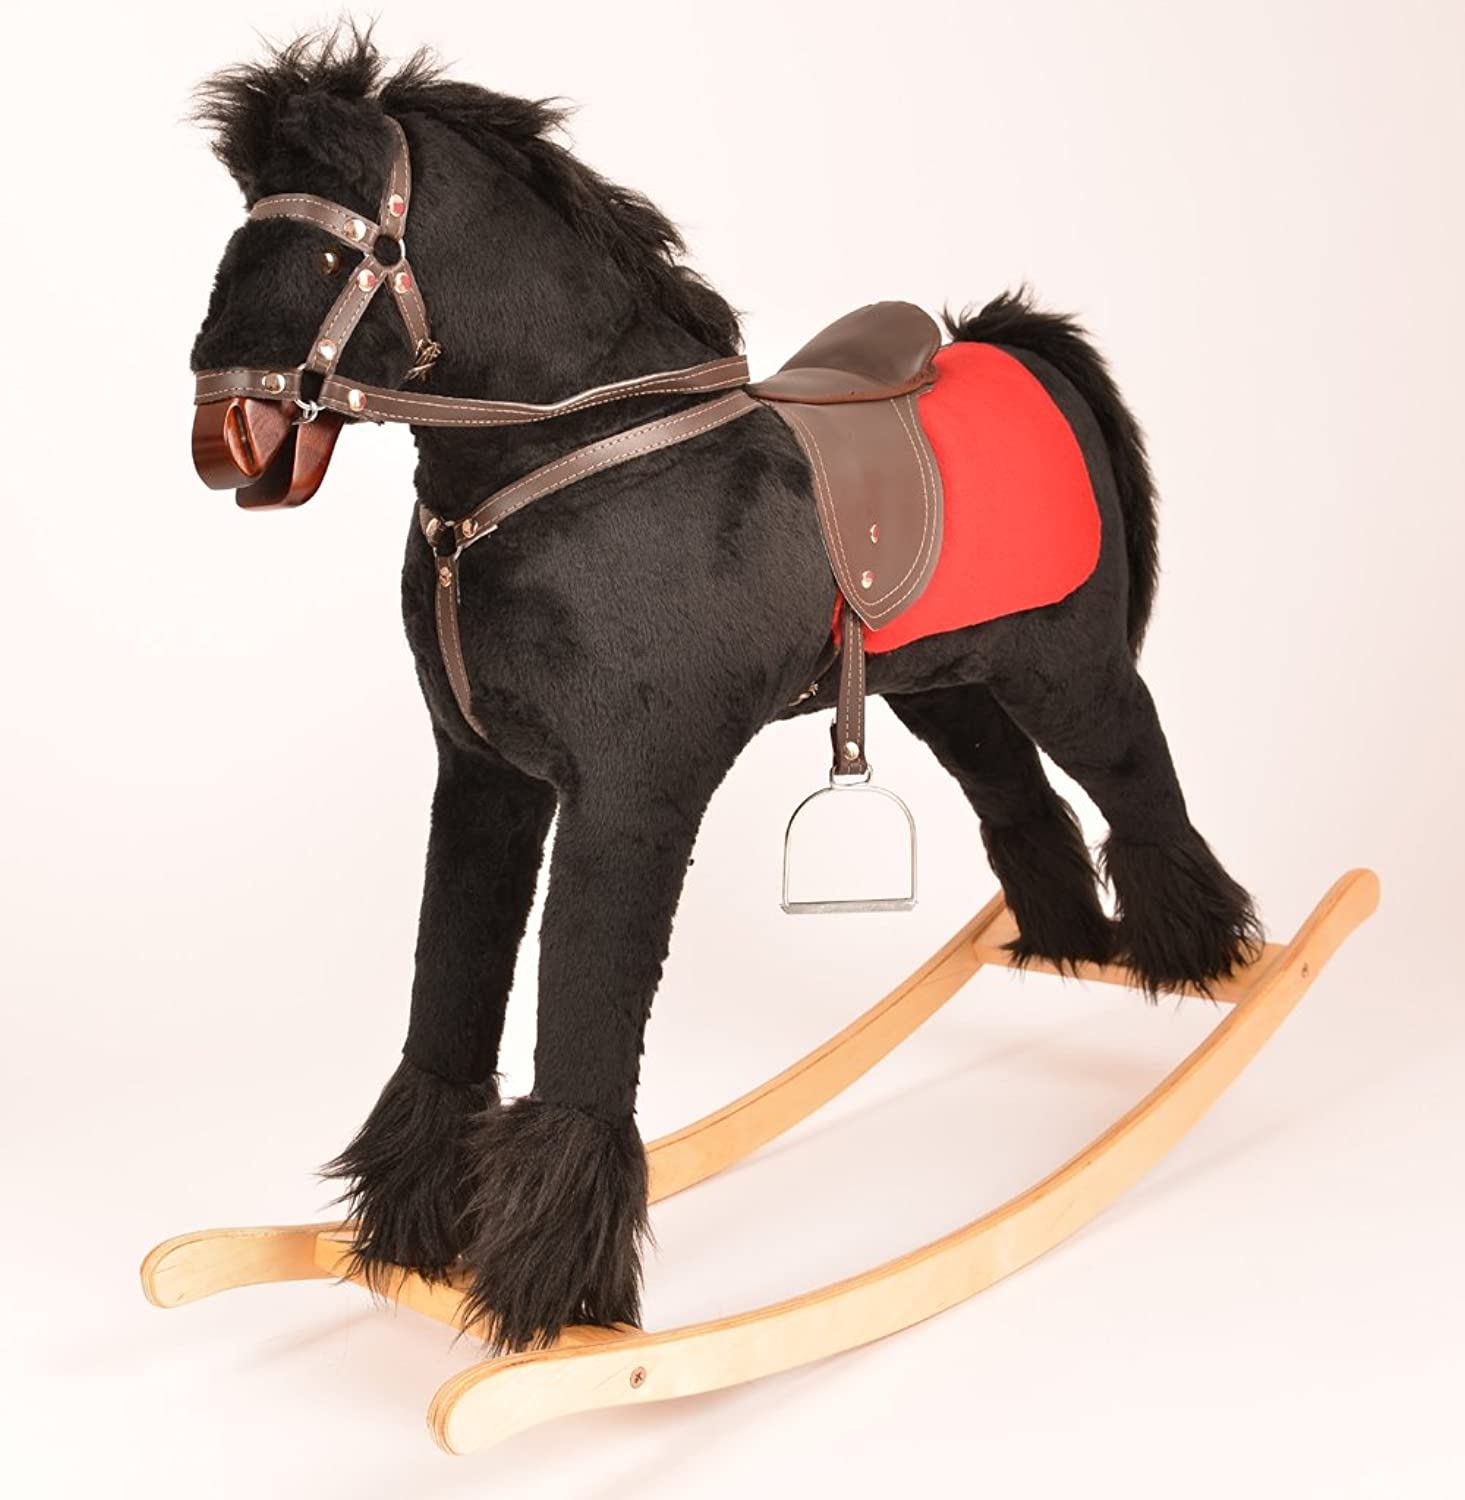 ALANEL BLACKY Handmade Medium Rocking Horse MADE IN EUROPE